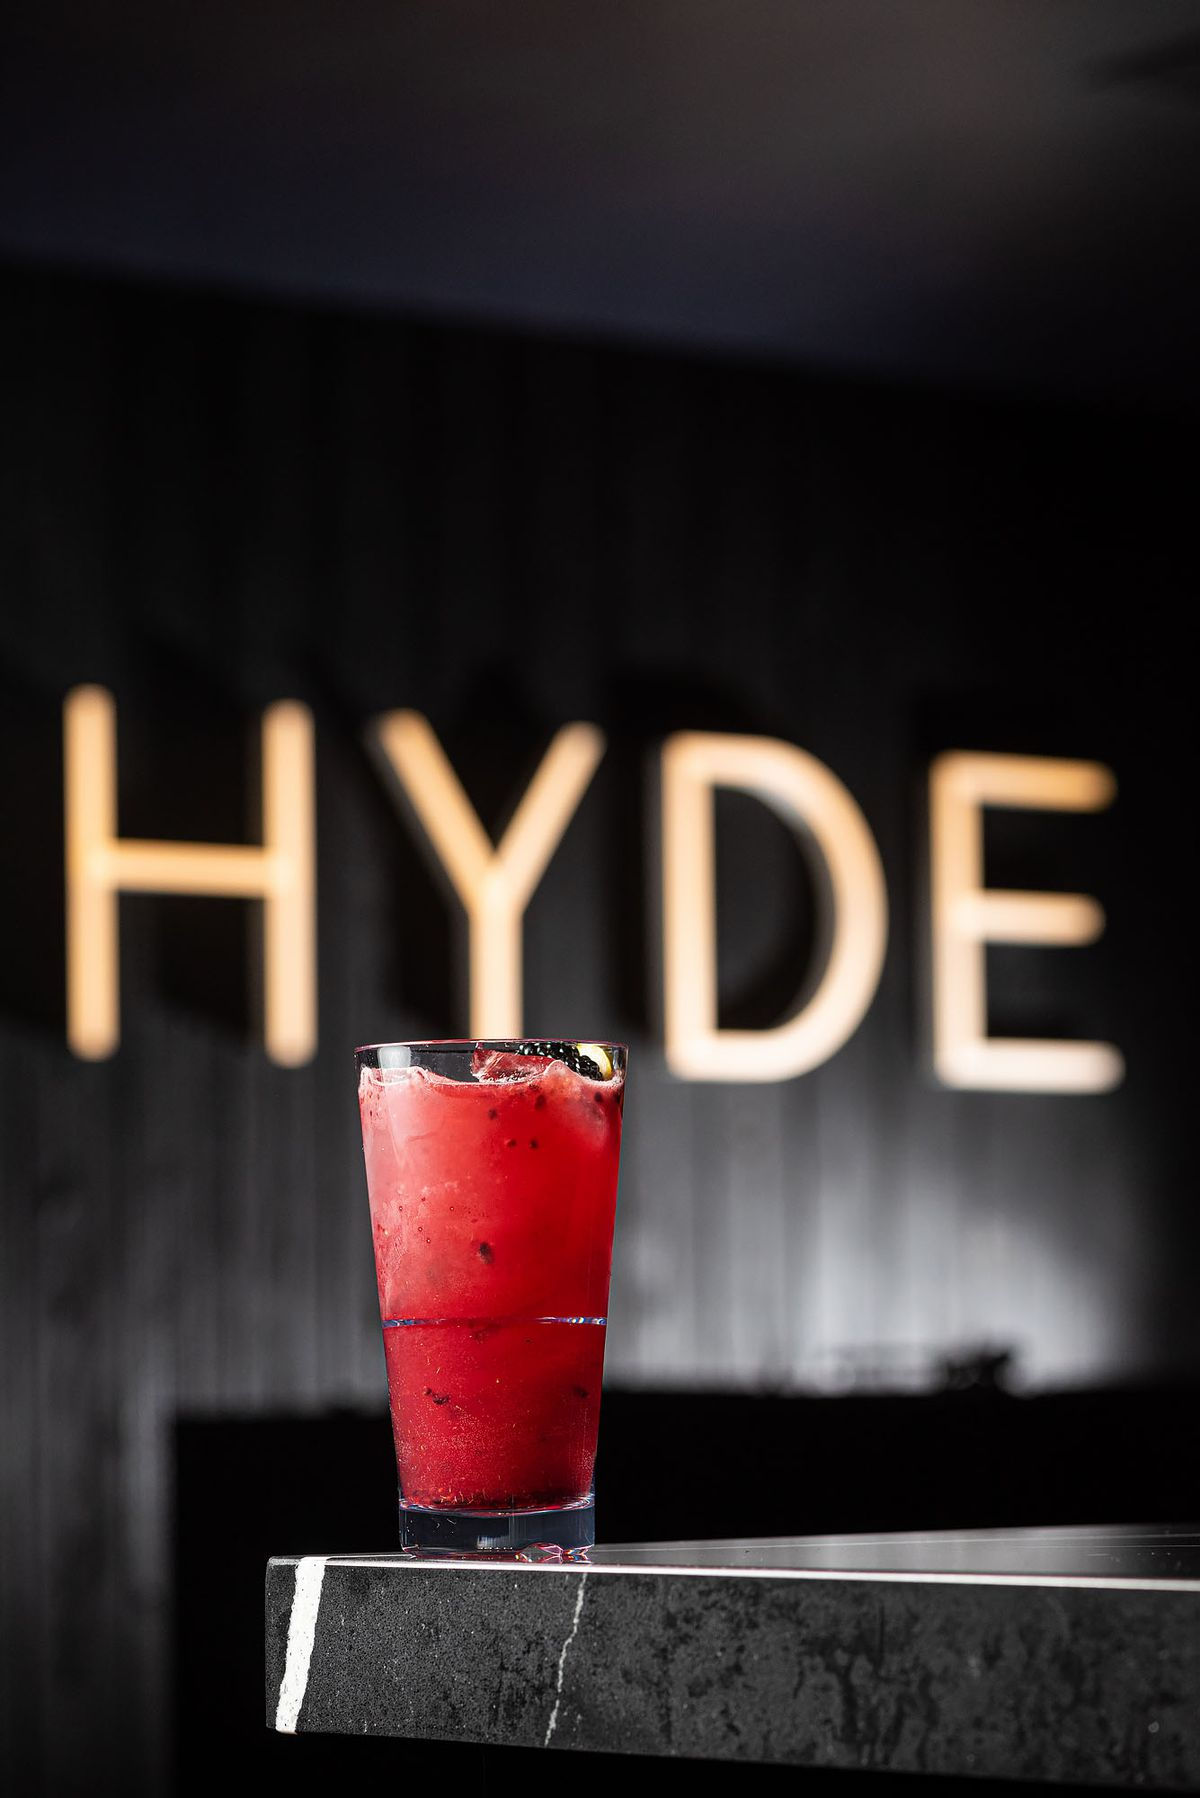 A bright red cocktail.